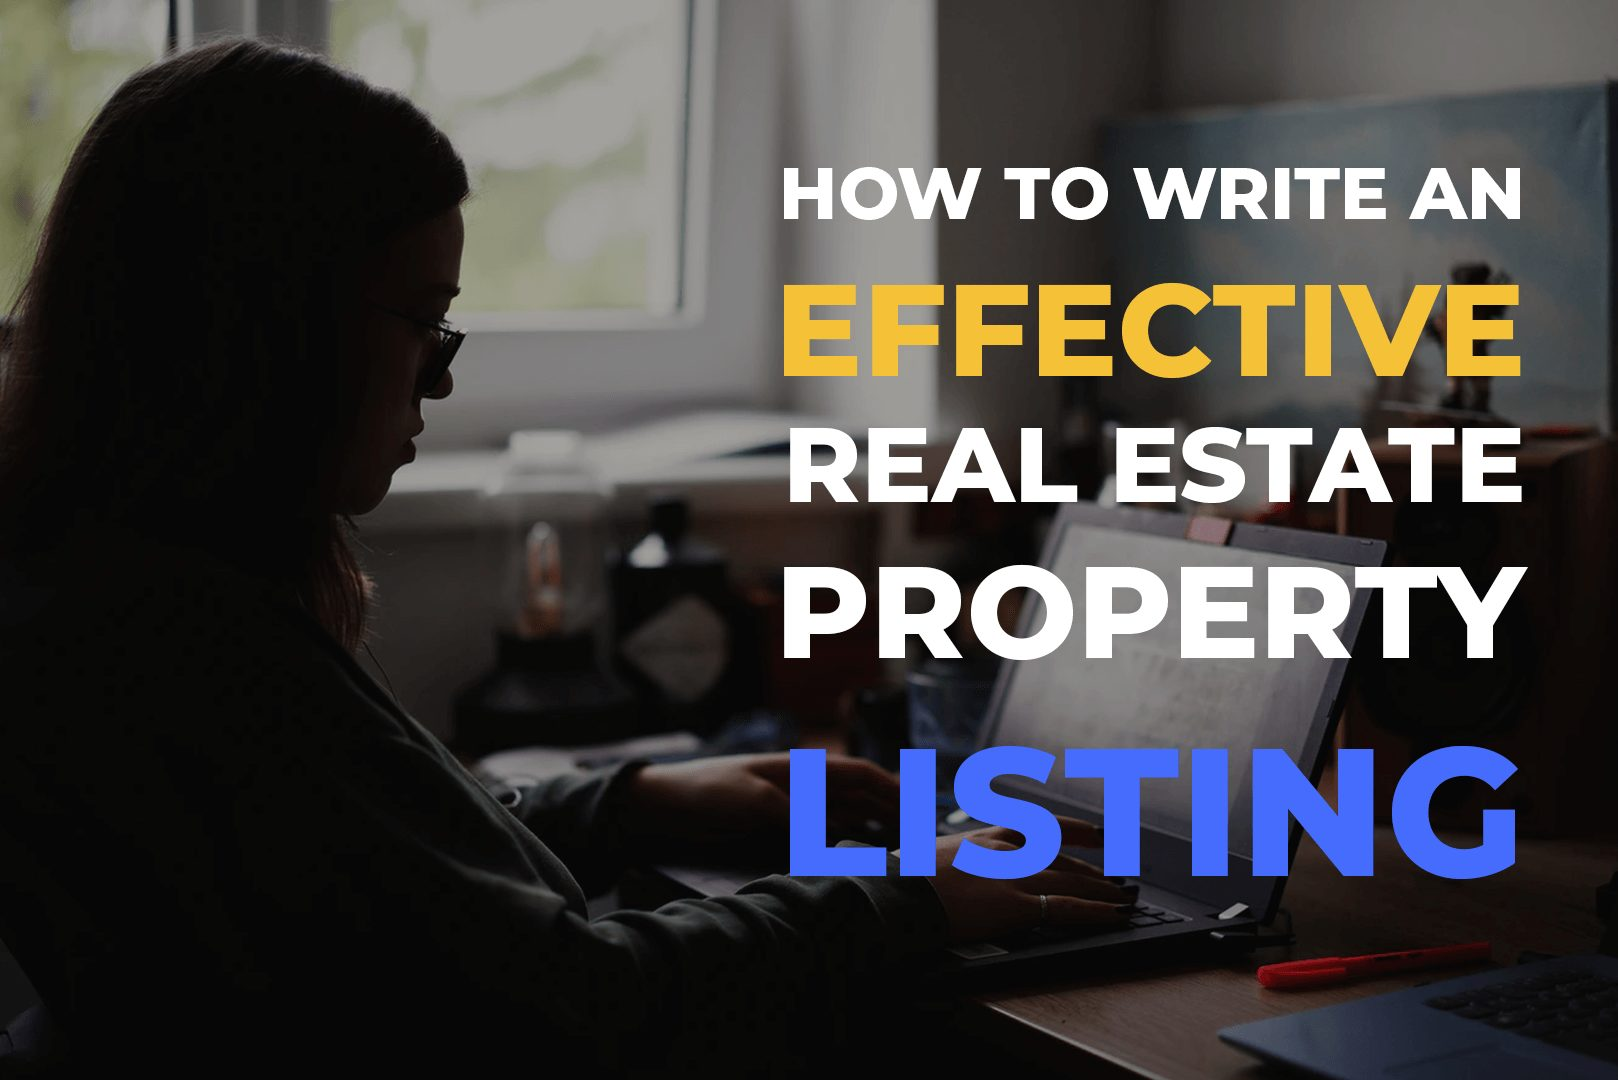 How To Write An Effective Real Estate Property Listing